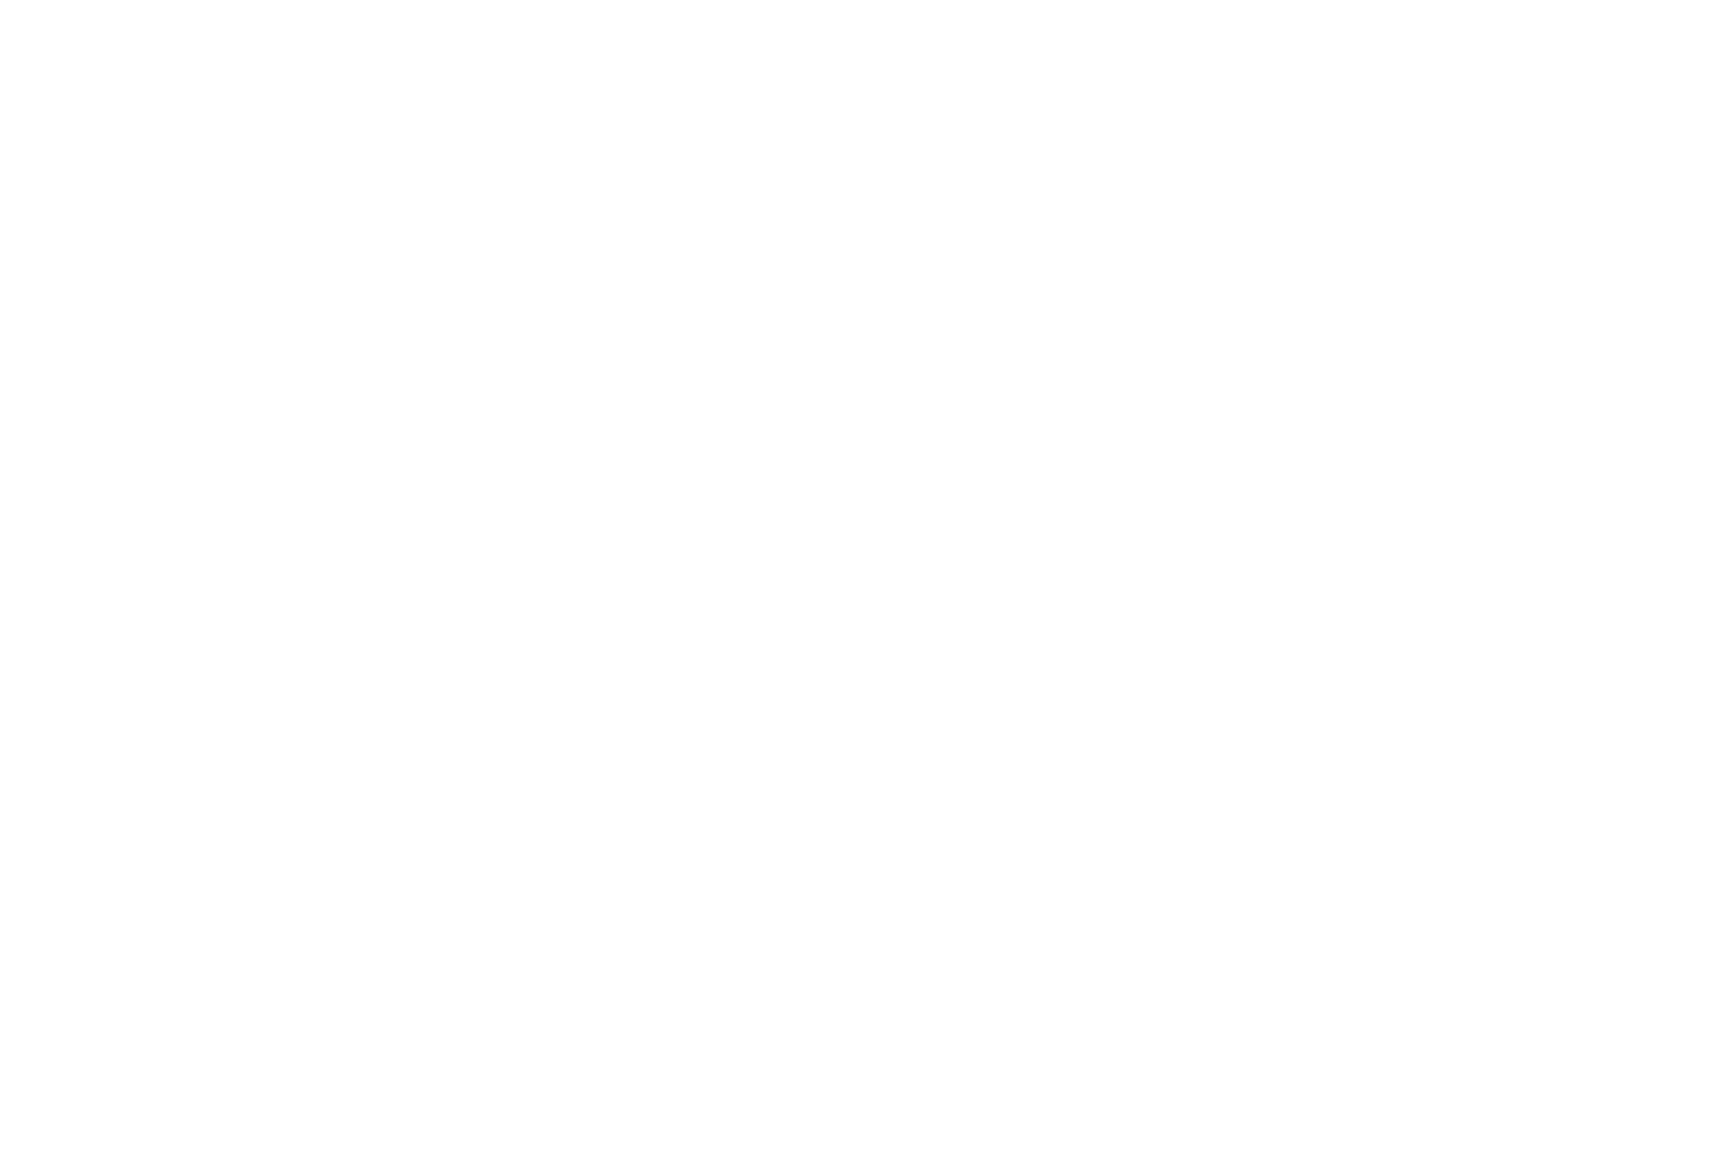 TOP 10 FINALIST - Bare Bones International Film Festival Screenplay Competition